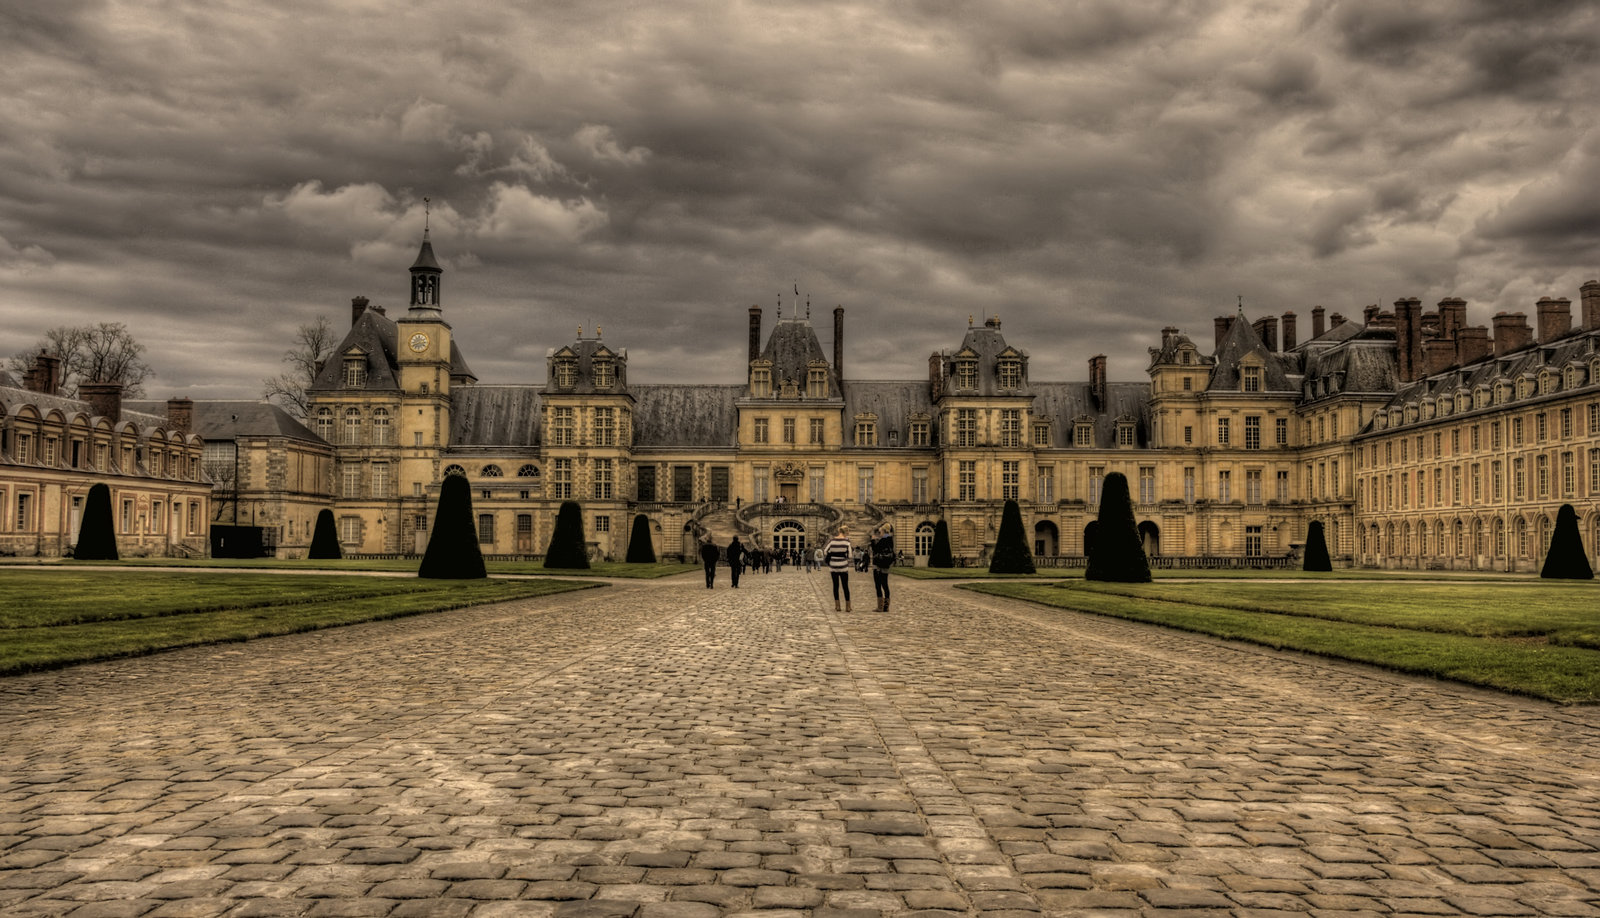 The_Palace_of_Fontainebleau_5_by_klubi.jpg